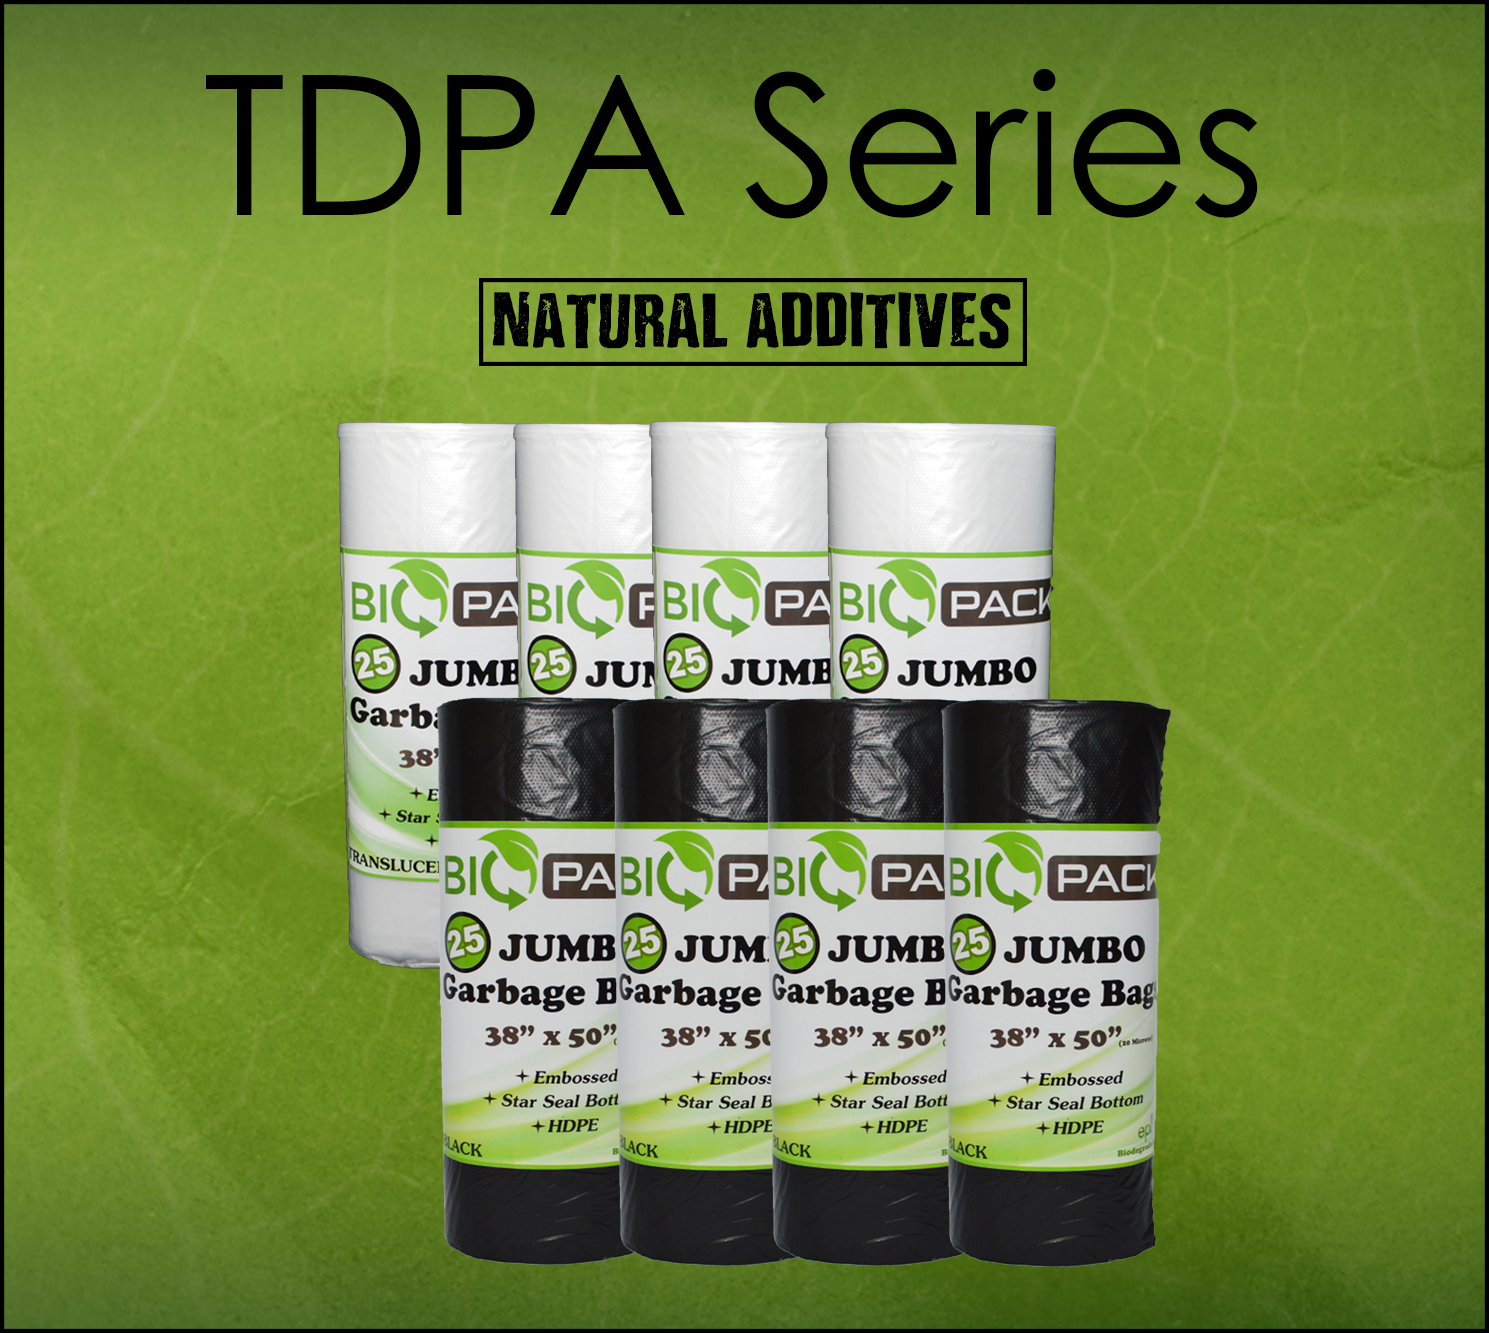 TDPA SERIES with pic web